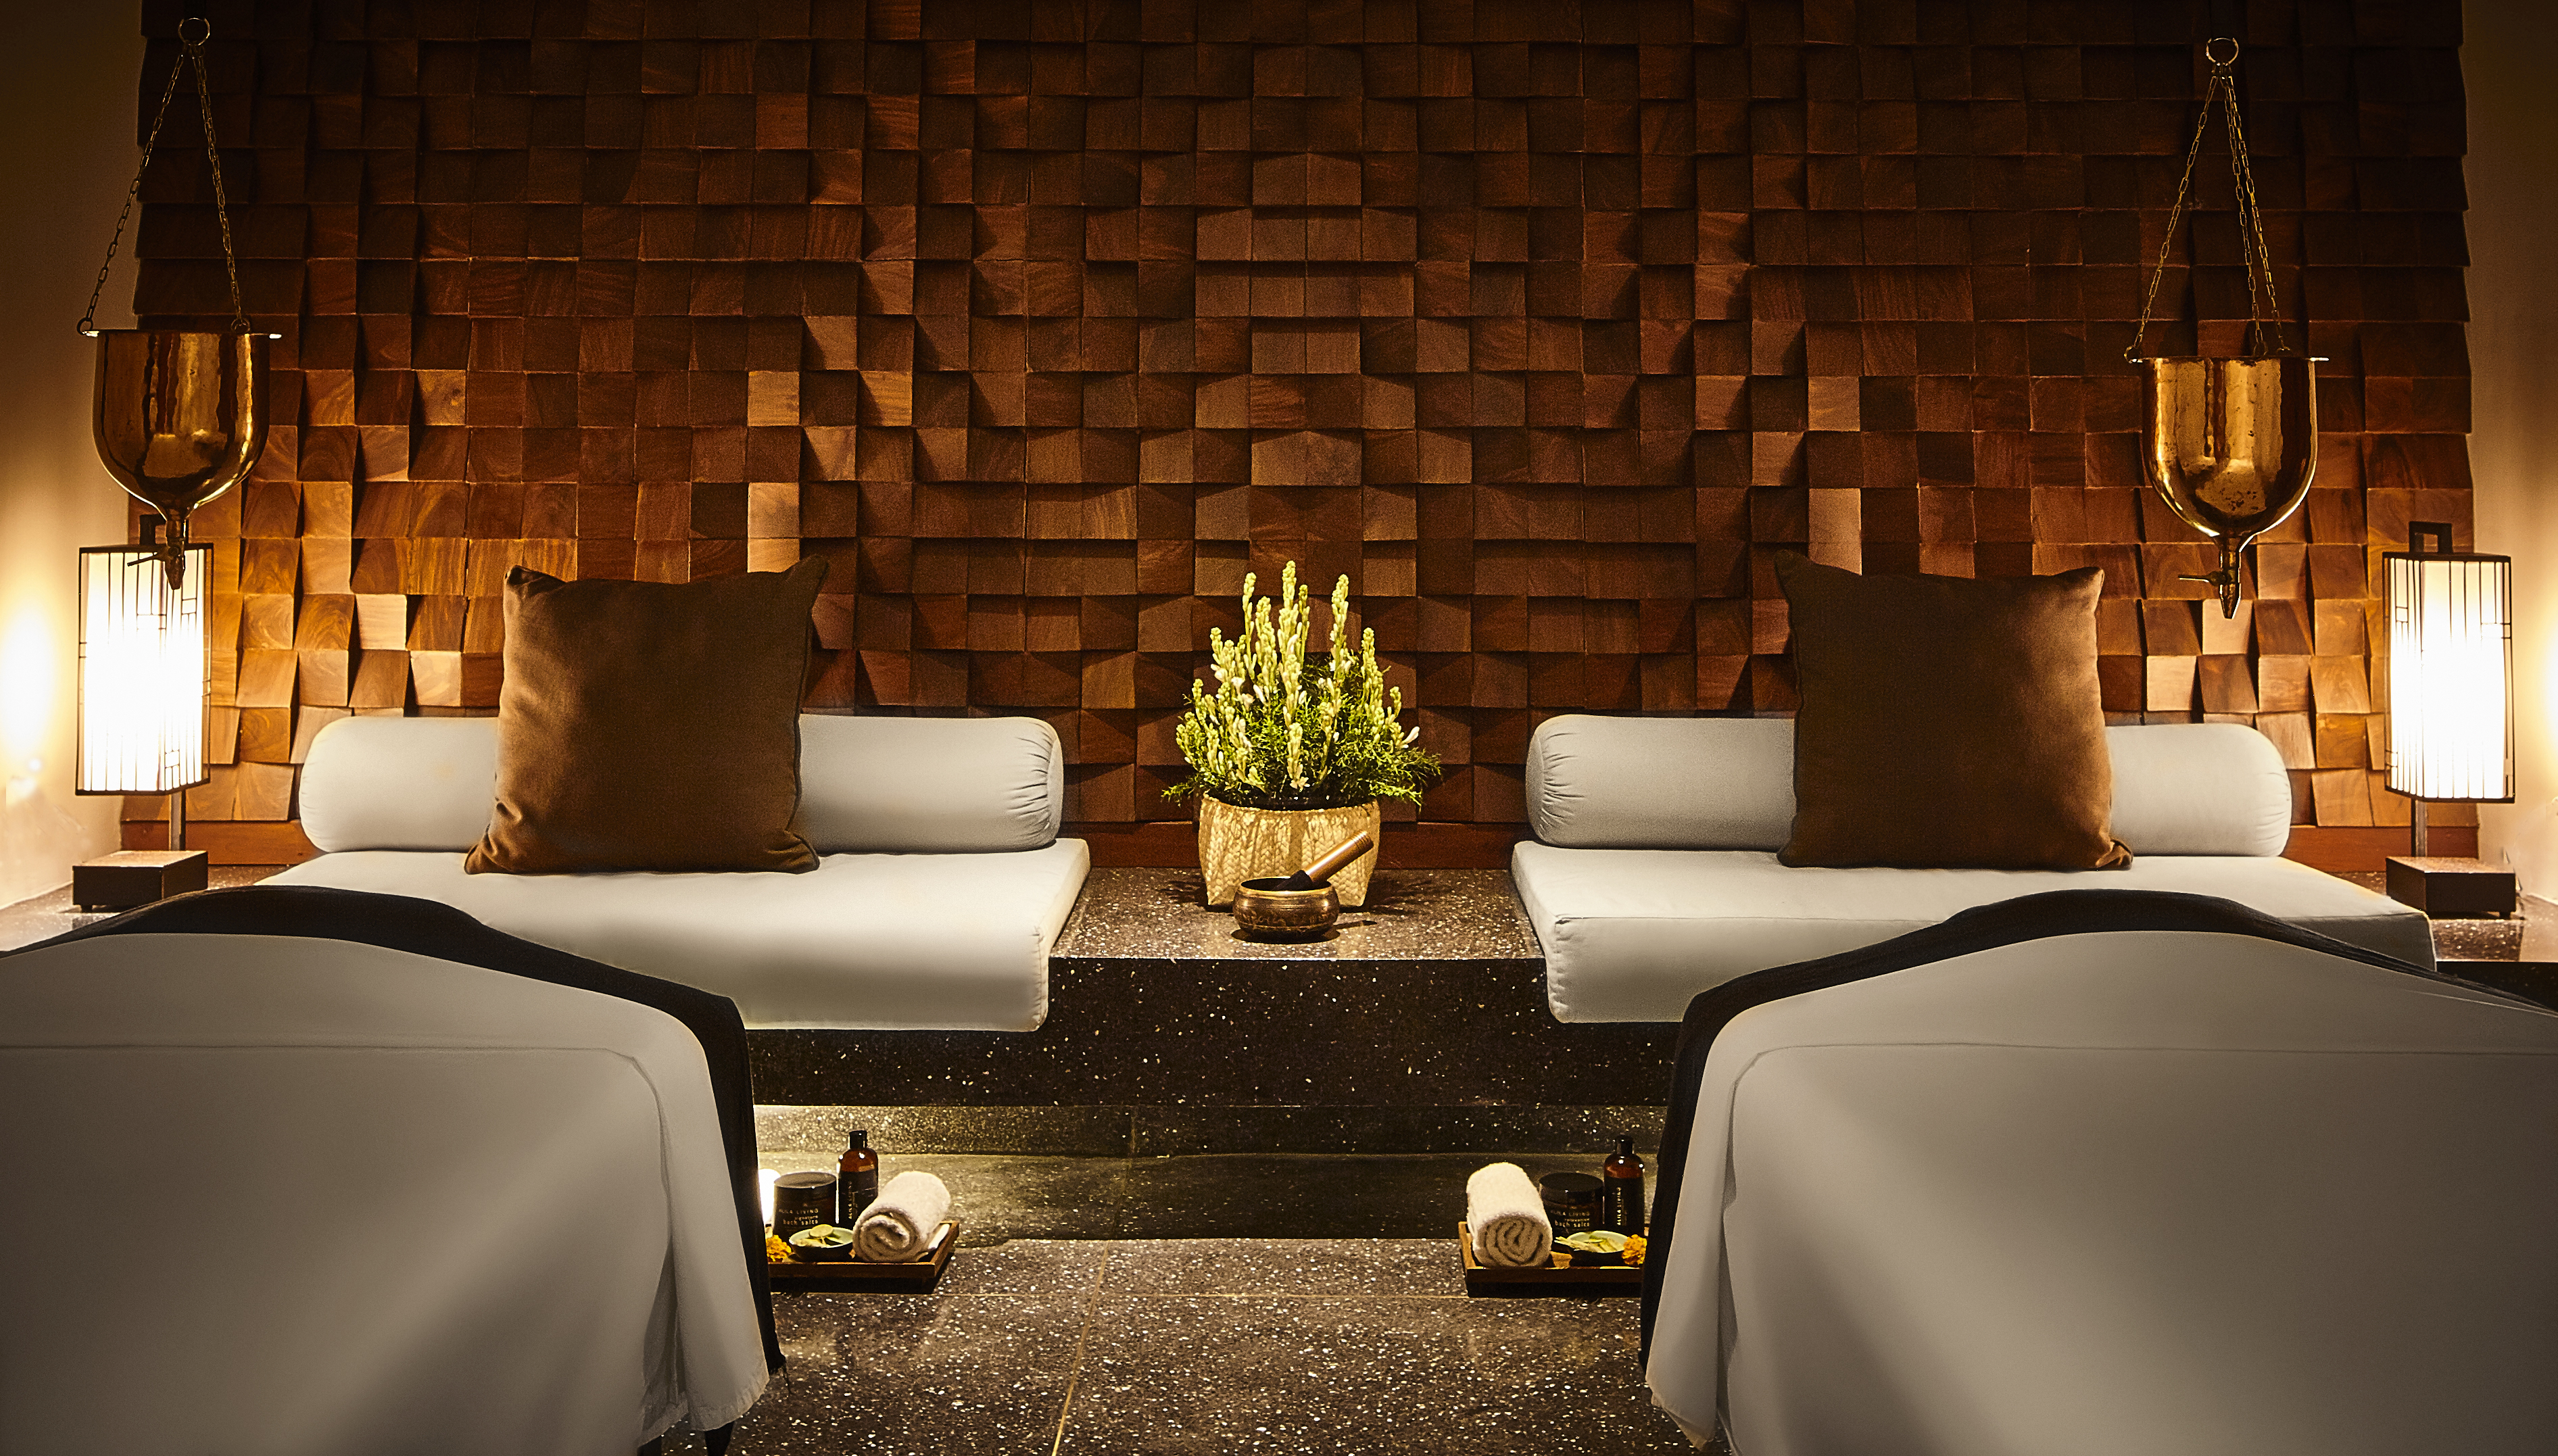 Get an amazing massage at Alila Seminyak's award-winning Spa.